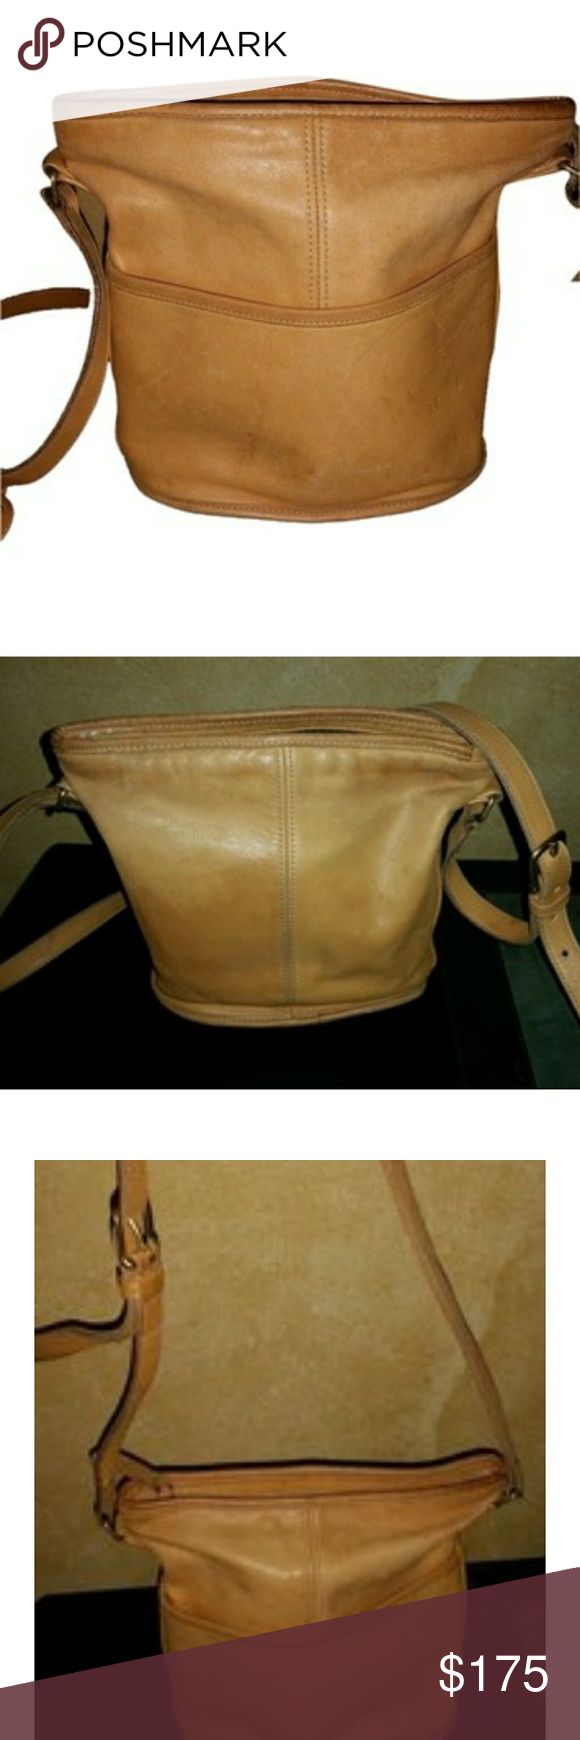 Coach Shoulder bag Vintage 100% authentic Coach hobo shoulder bag in British Tan, a warm brown soft, smooth leather.   The leather does have scuffs and some pens marks.   Two pockets, One inside slip pocket, one outside slip.   Adjustable length shoulder strap. One end has come off buckle, please refer to photo. An easy fix for a cobbler and you have a stunning new bag!   Made in USA No#0469-116 Coach Bags Shoulder Bags